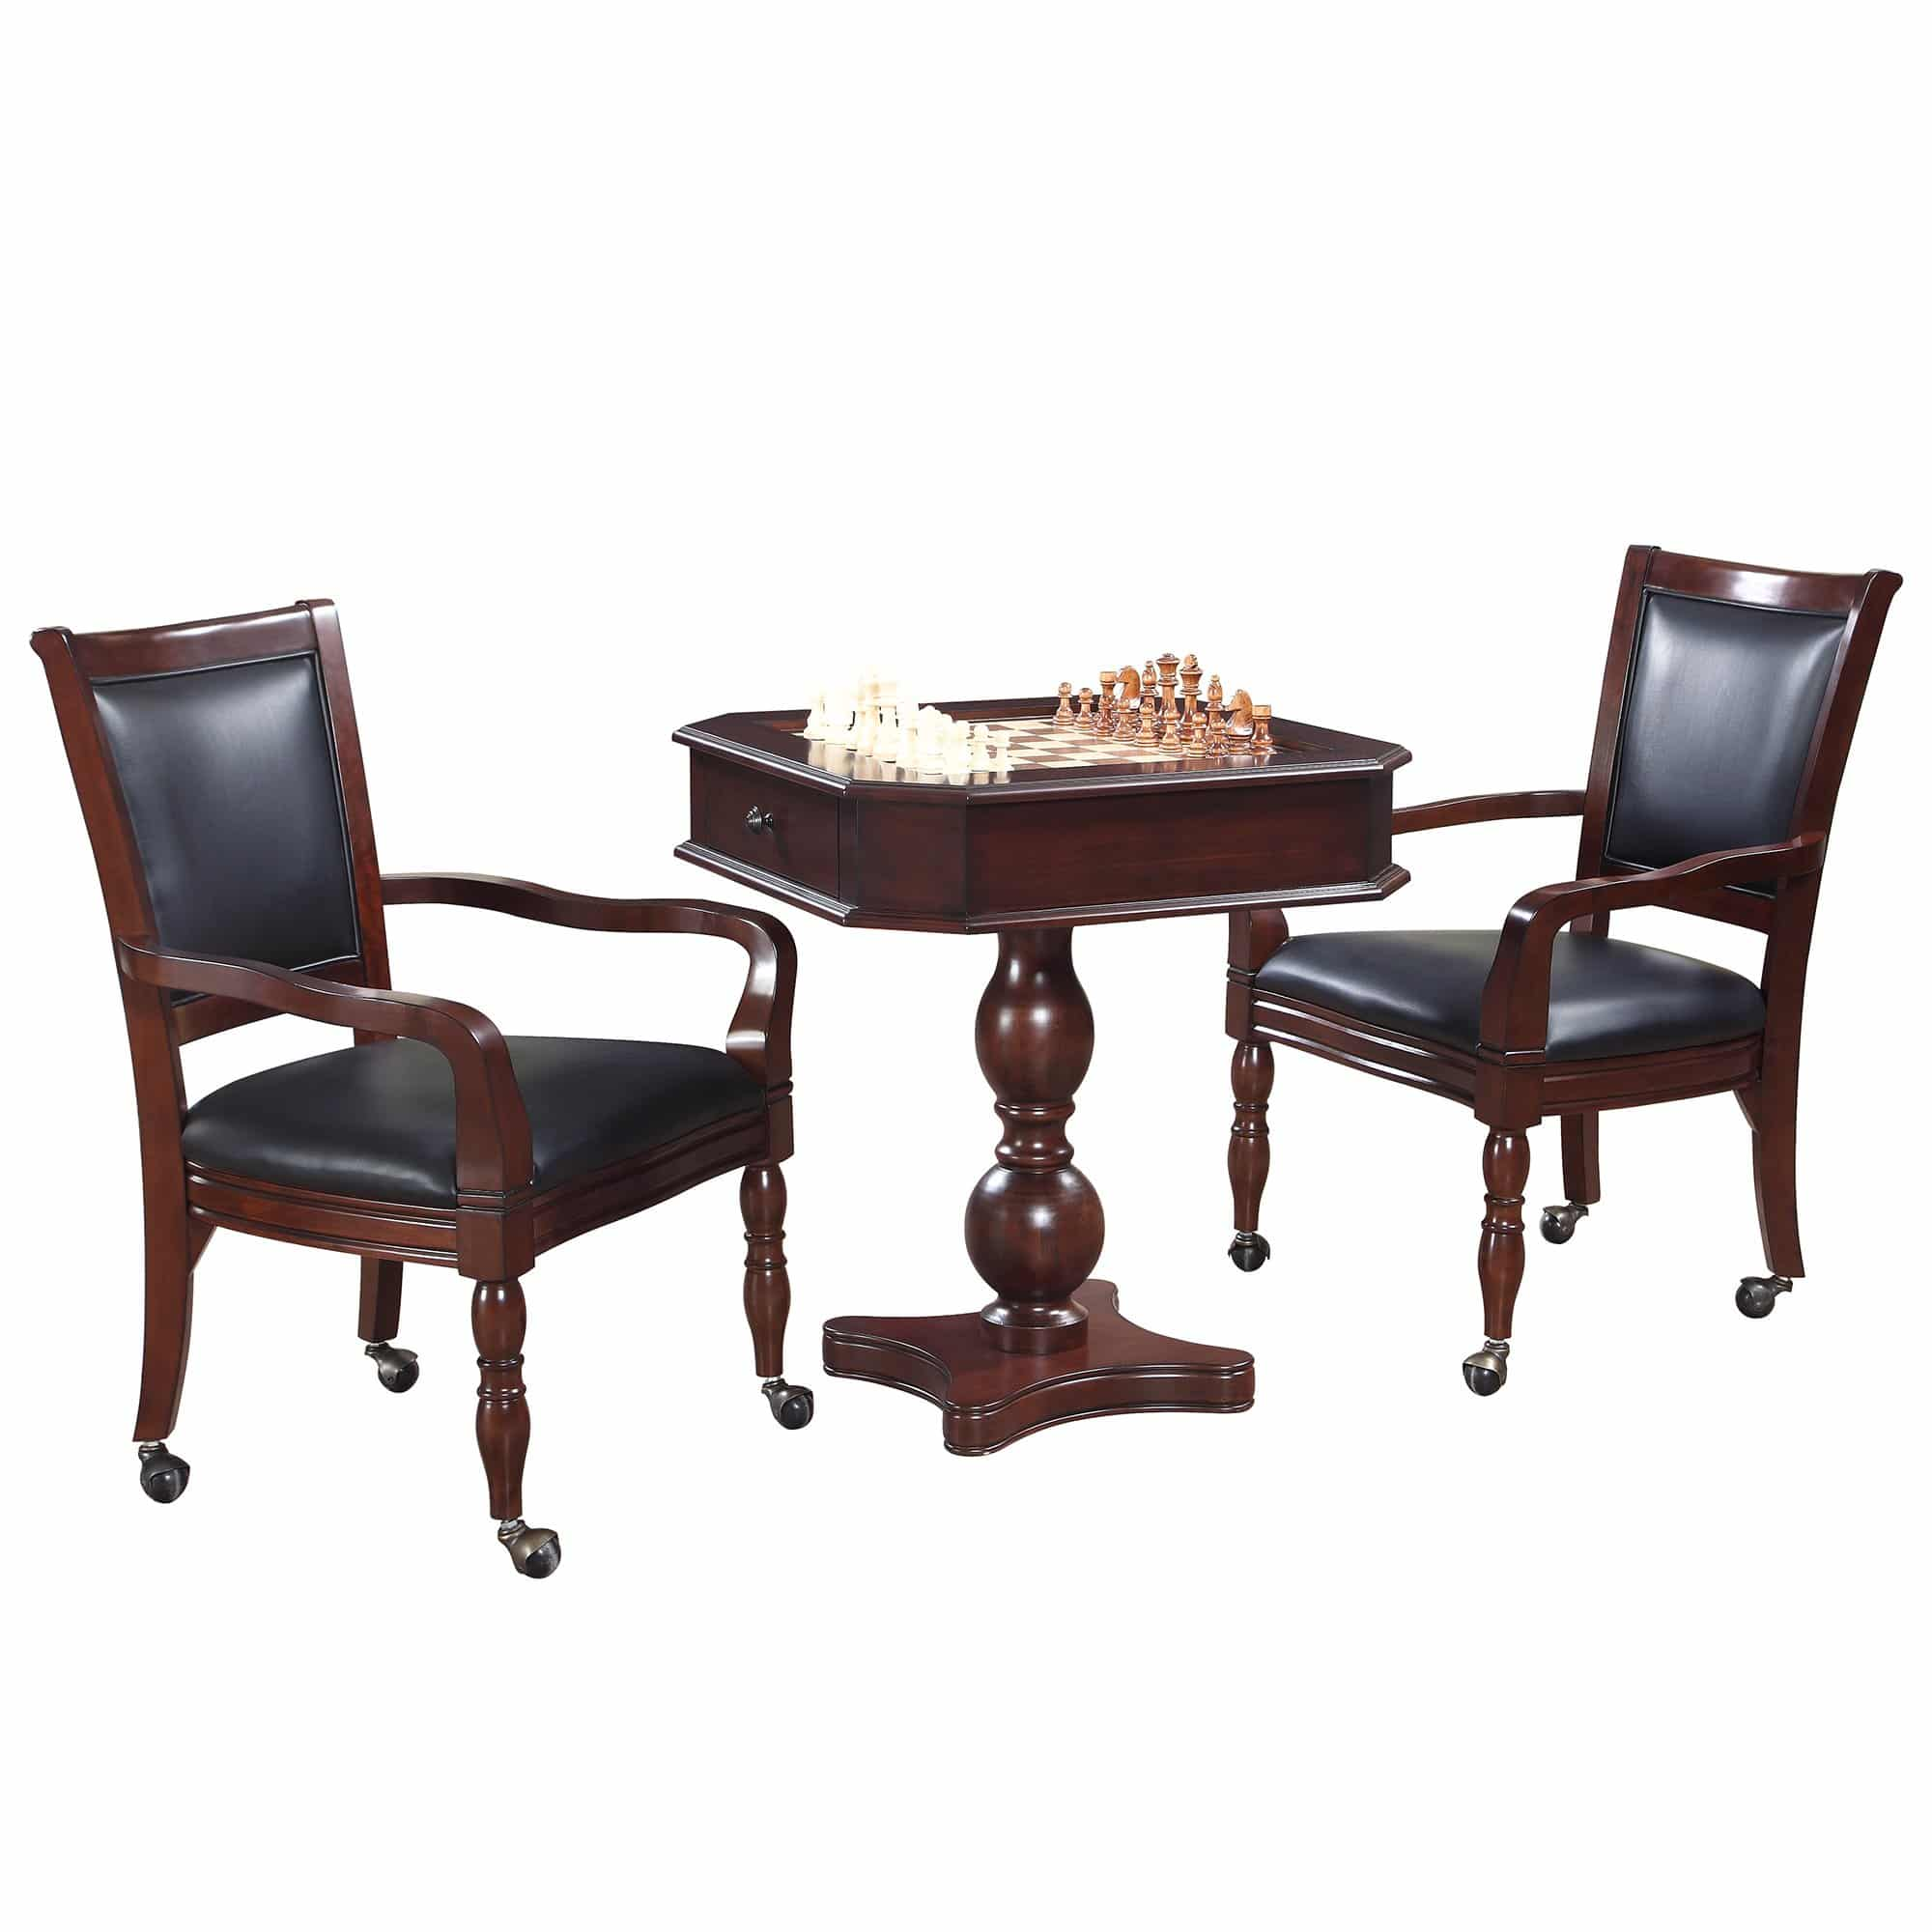 Fortress Chess, Checkers & Backgammon Pedestal Game Table